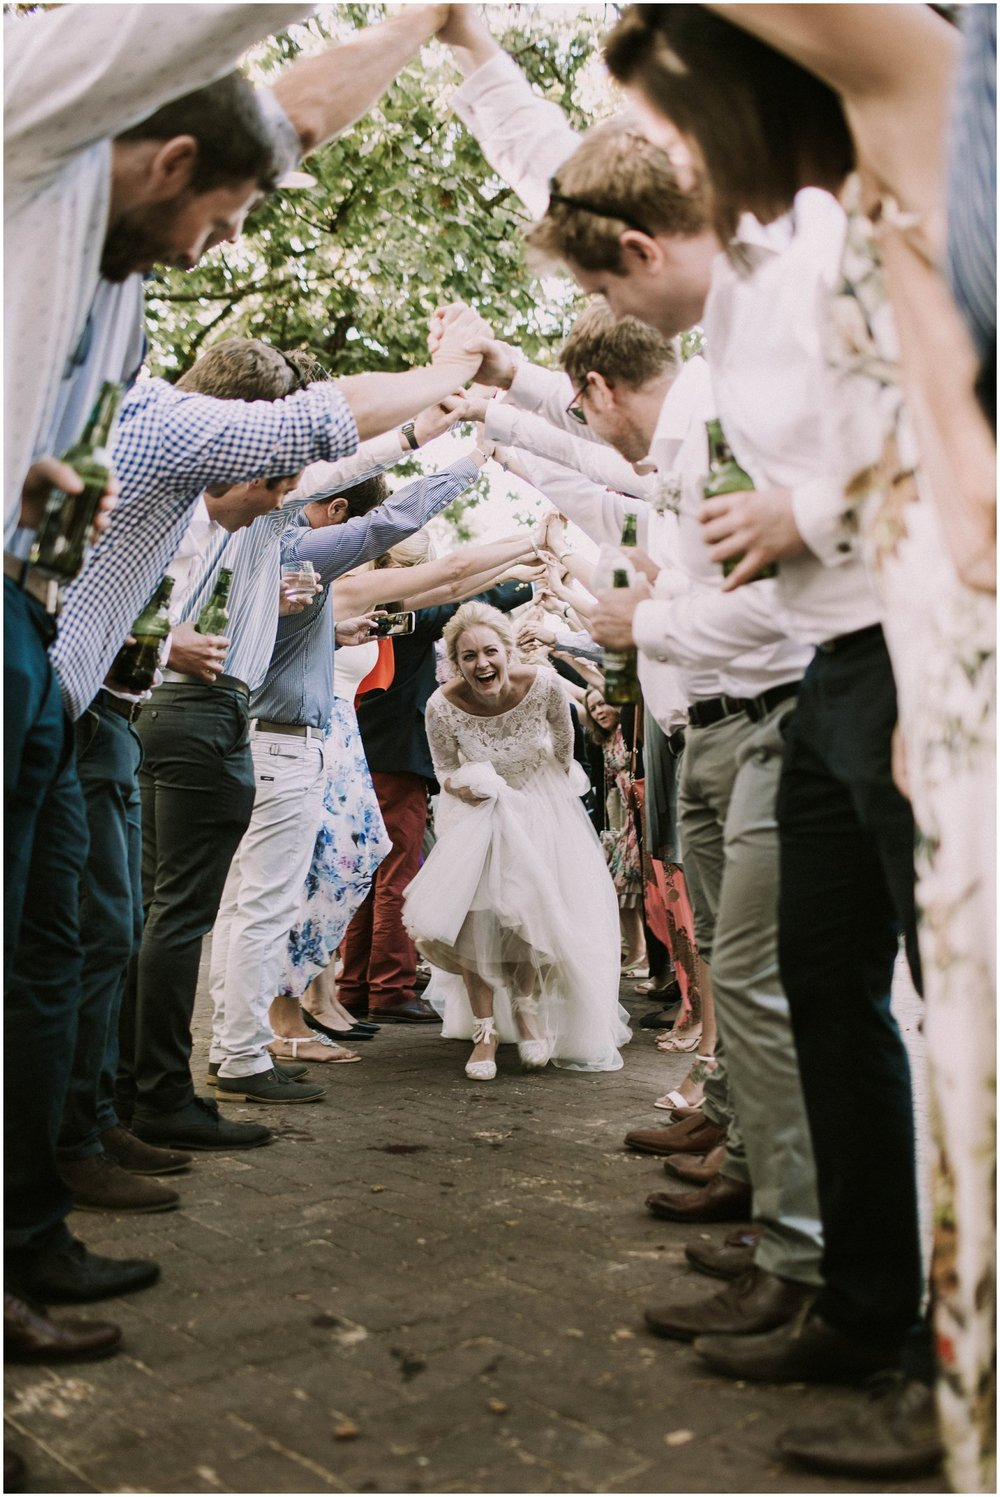 Top Wedding Photographer Cape Town South Africa Artistic Creative Documentary Wedding Photography Rue Kruger_0720.jpg